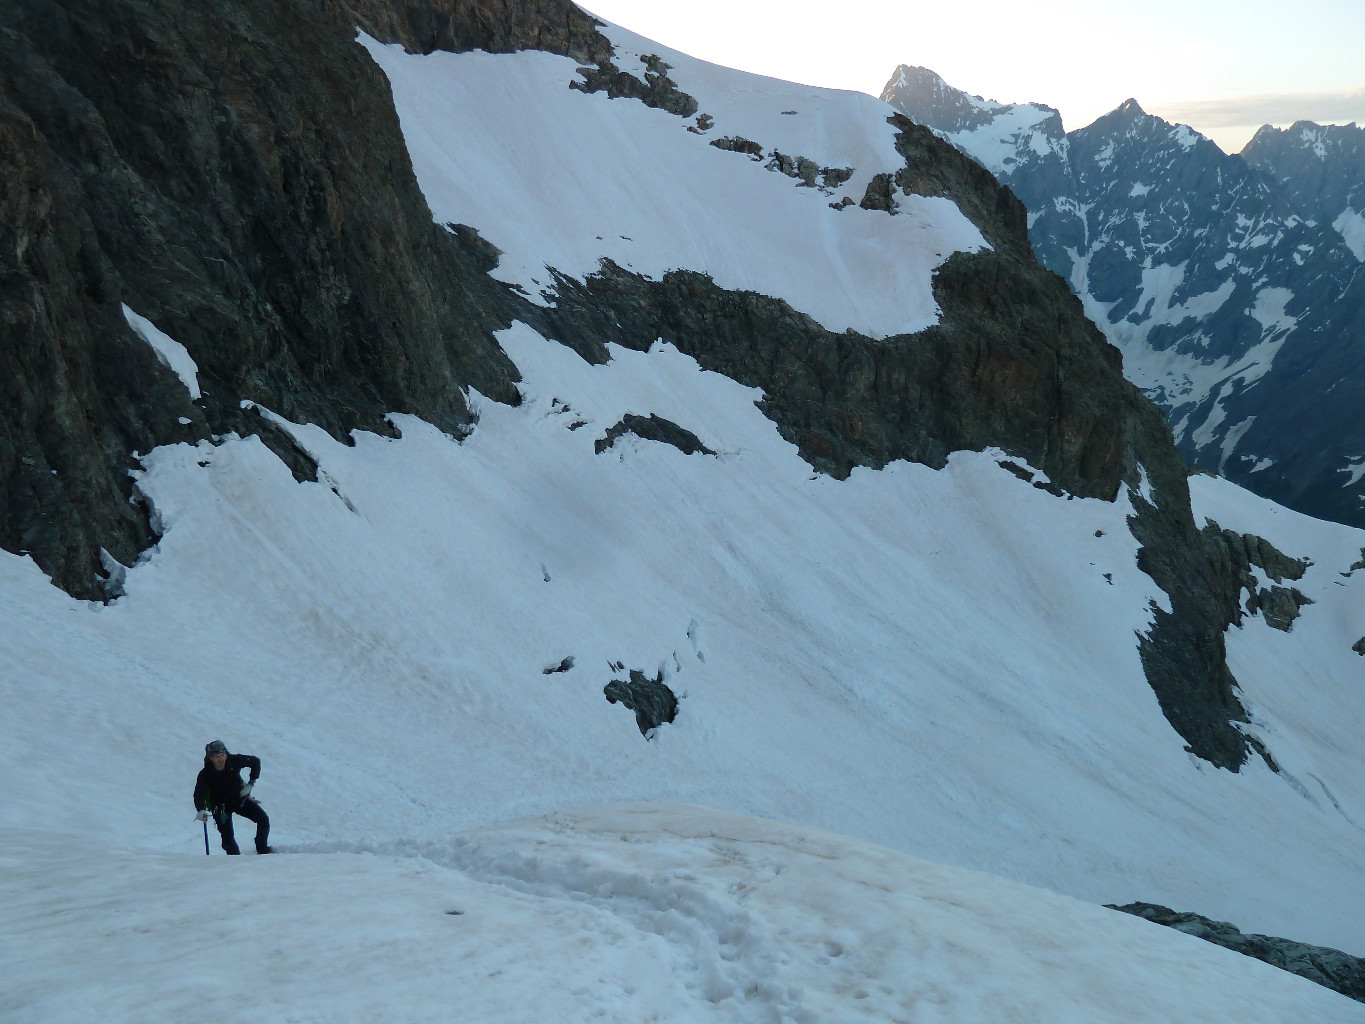 just above the left branche of the couloir